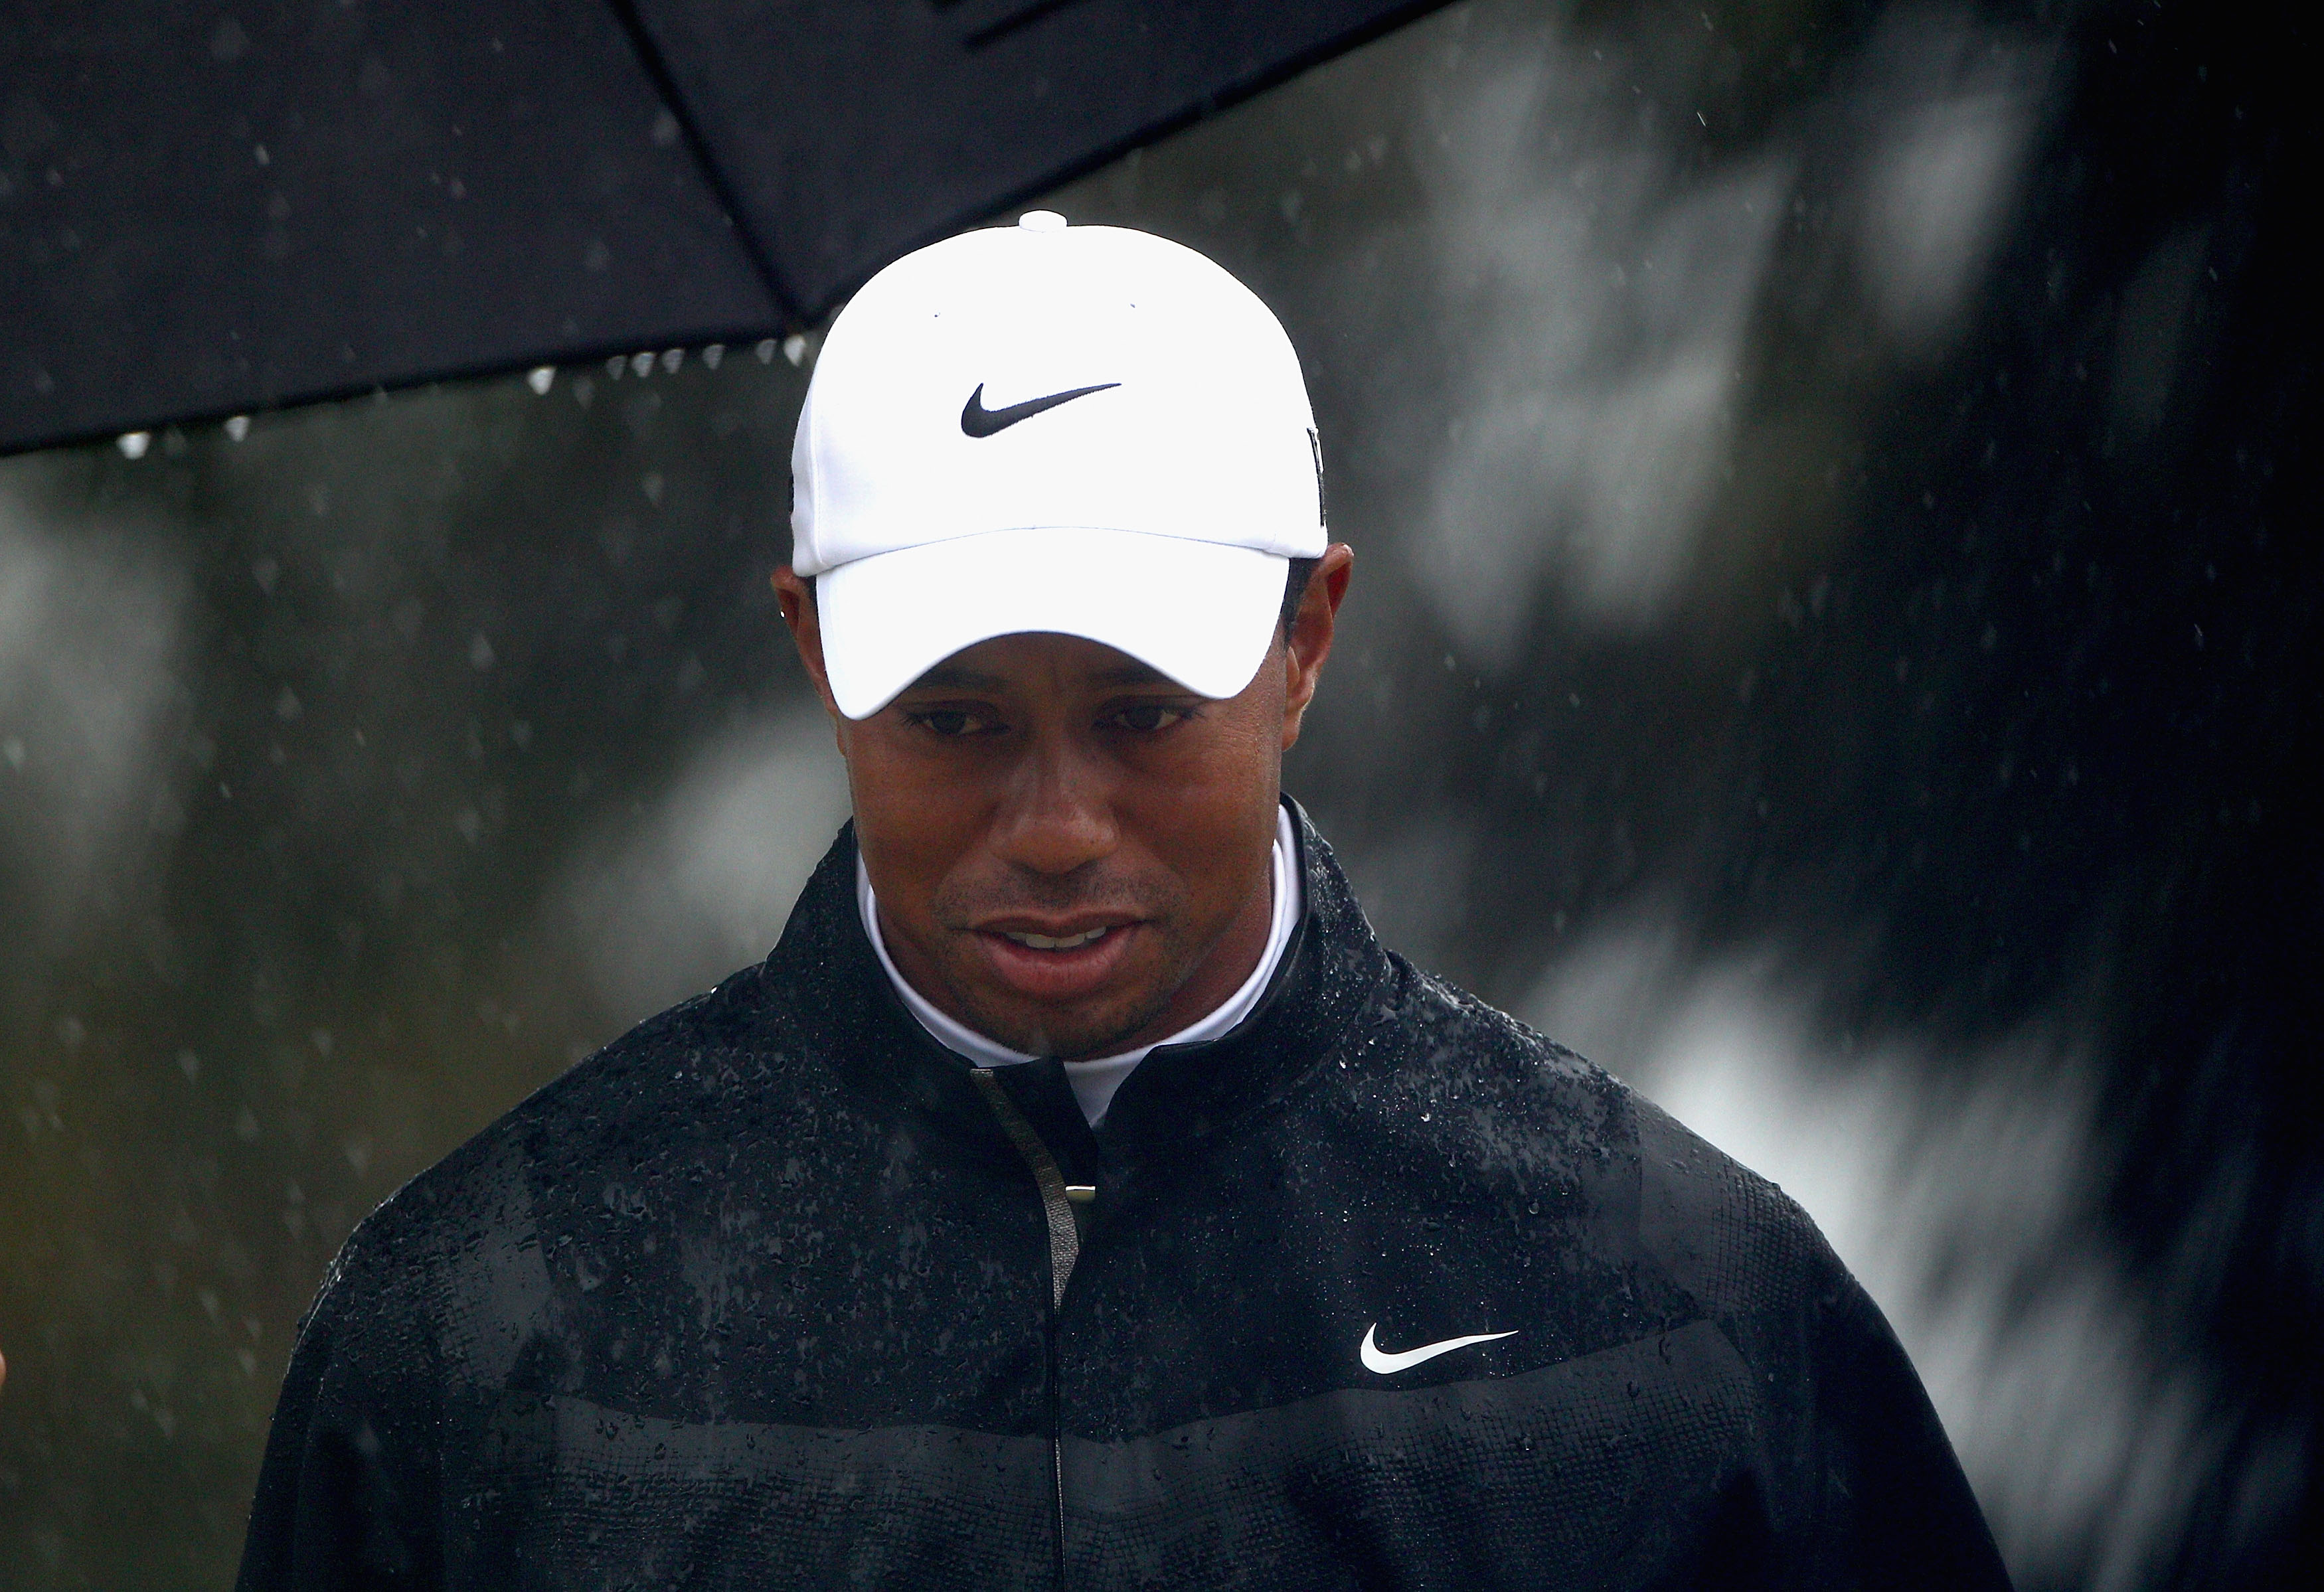 MELBOURNE, AUSTRALIA - NOVEMBER 13:  Tiger Woods of the USA looks on as the rain falls during round three of the Australian Masters at The Victoria Golf Club on November 13, 2010 in Melbourne, Australia.  (Photo by Ryan Pierse/Getty Images)